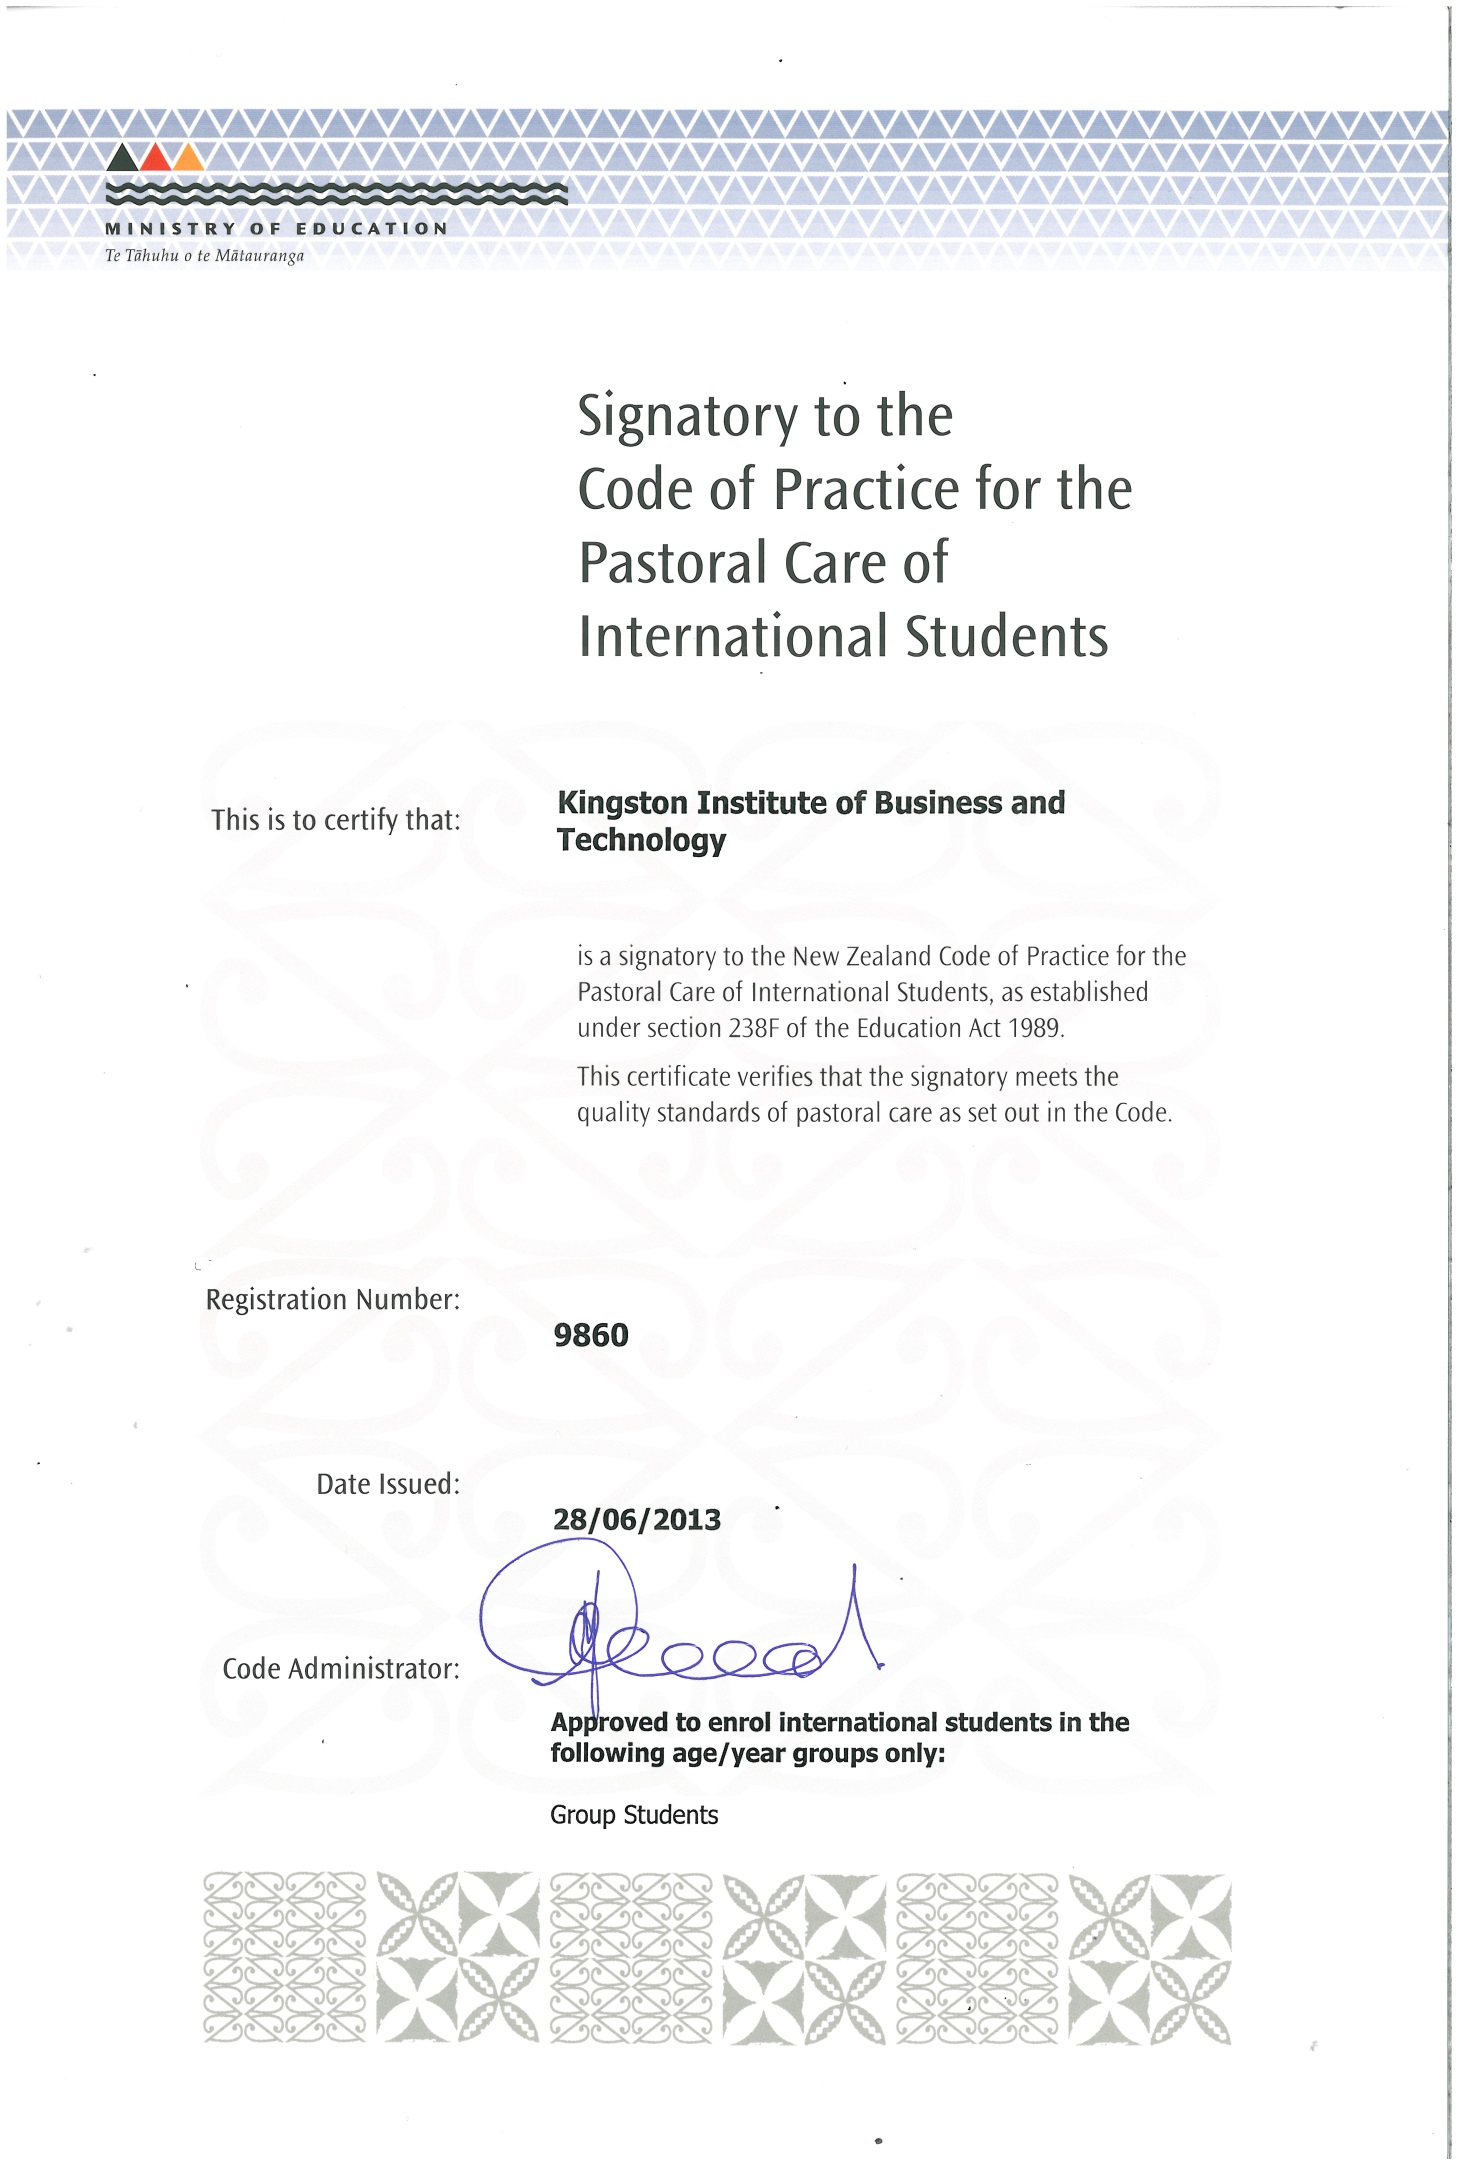 Signatory to the New Zealand Code of Practice for the Pastoral Care of International Students